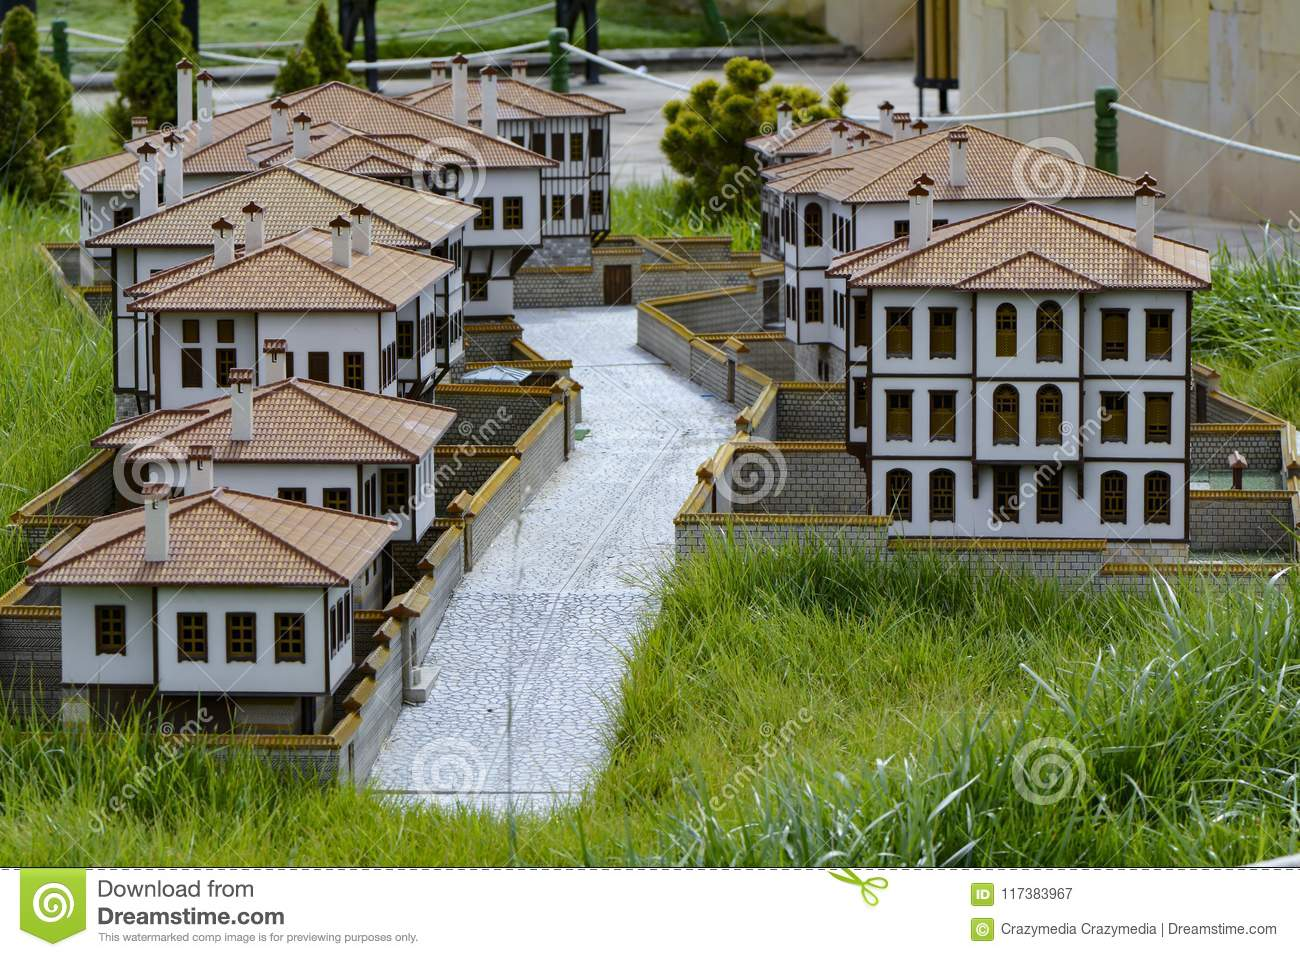 miniature house models and varieties of local houses